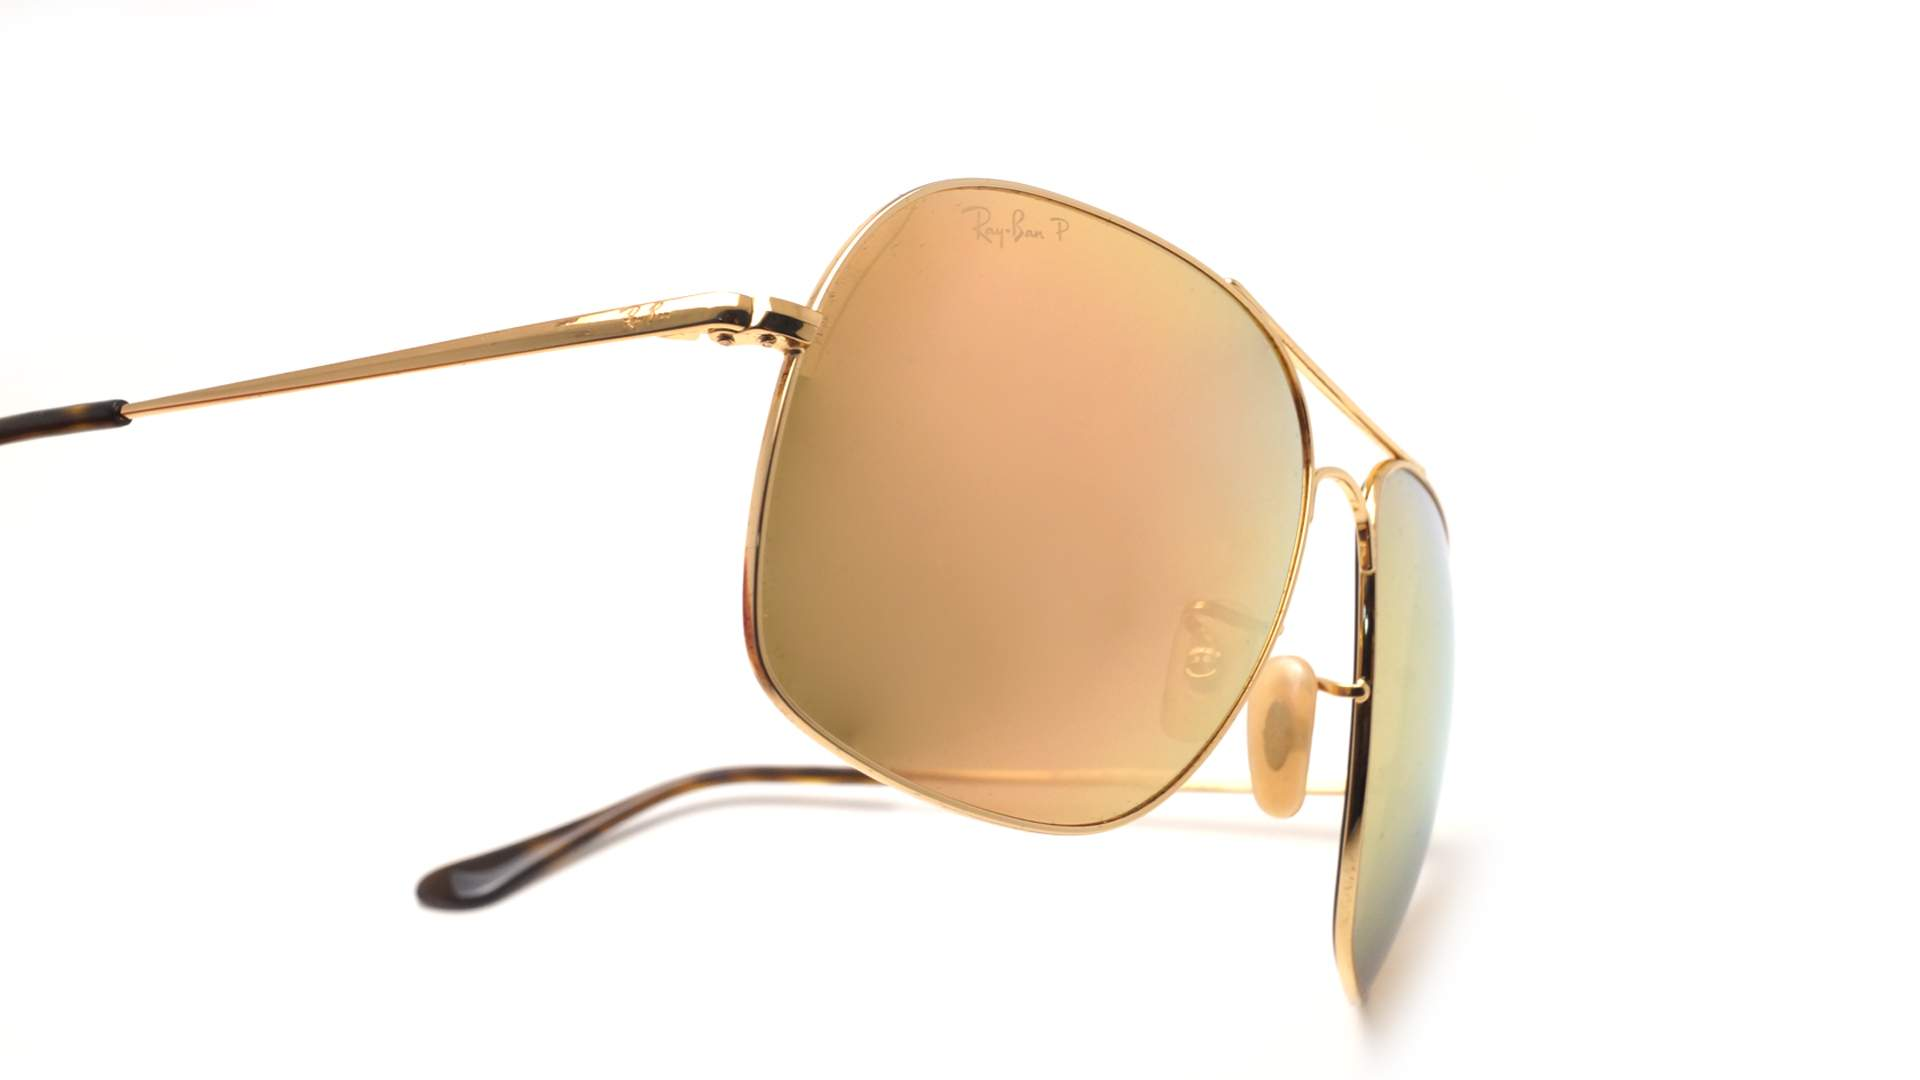 d448582f972 Sunglasses Ray-Ban RB3587CH 001 I0 61-15 Gold Chromance Large Polarized  Gradient Mirror